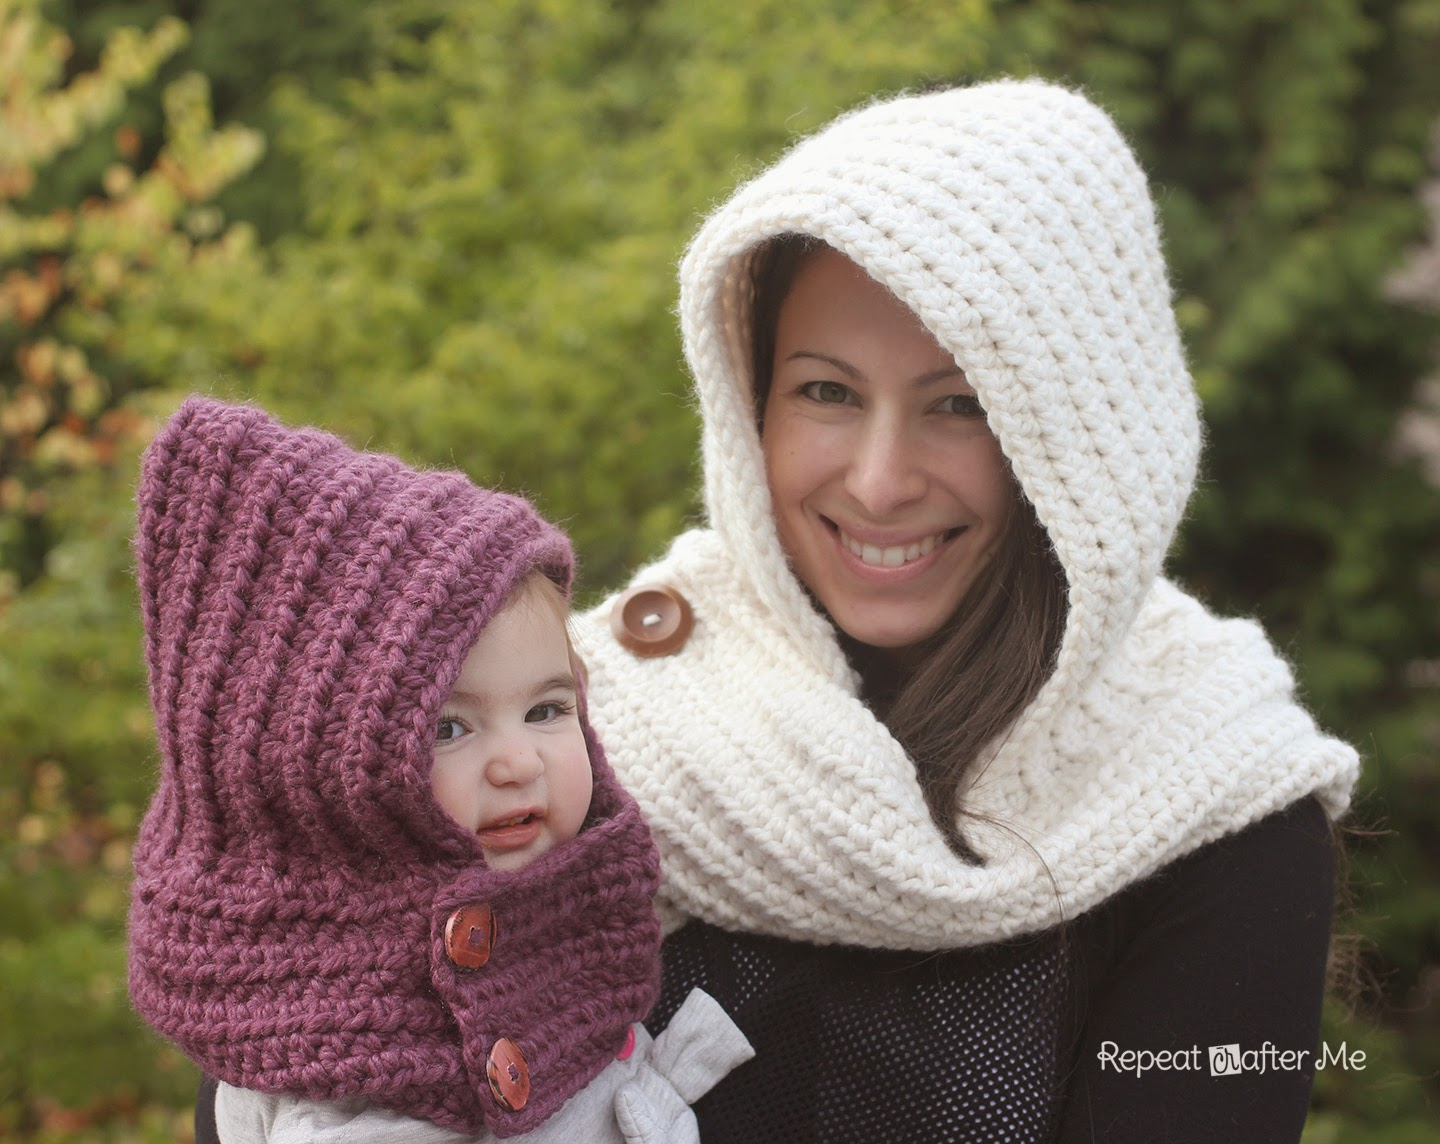 Crochet Patterns Free Hooded Scarf : 20 Free Crochet Scarves and Cowls Oombawka Design Crochet